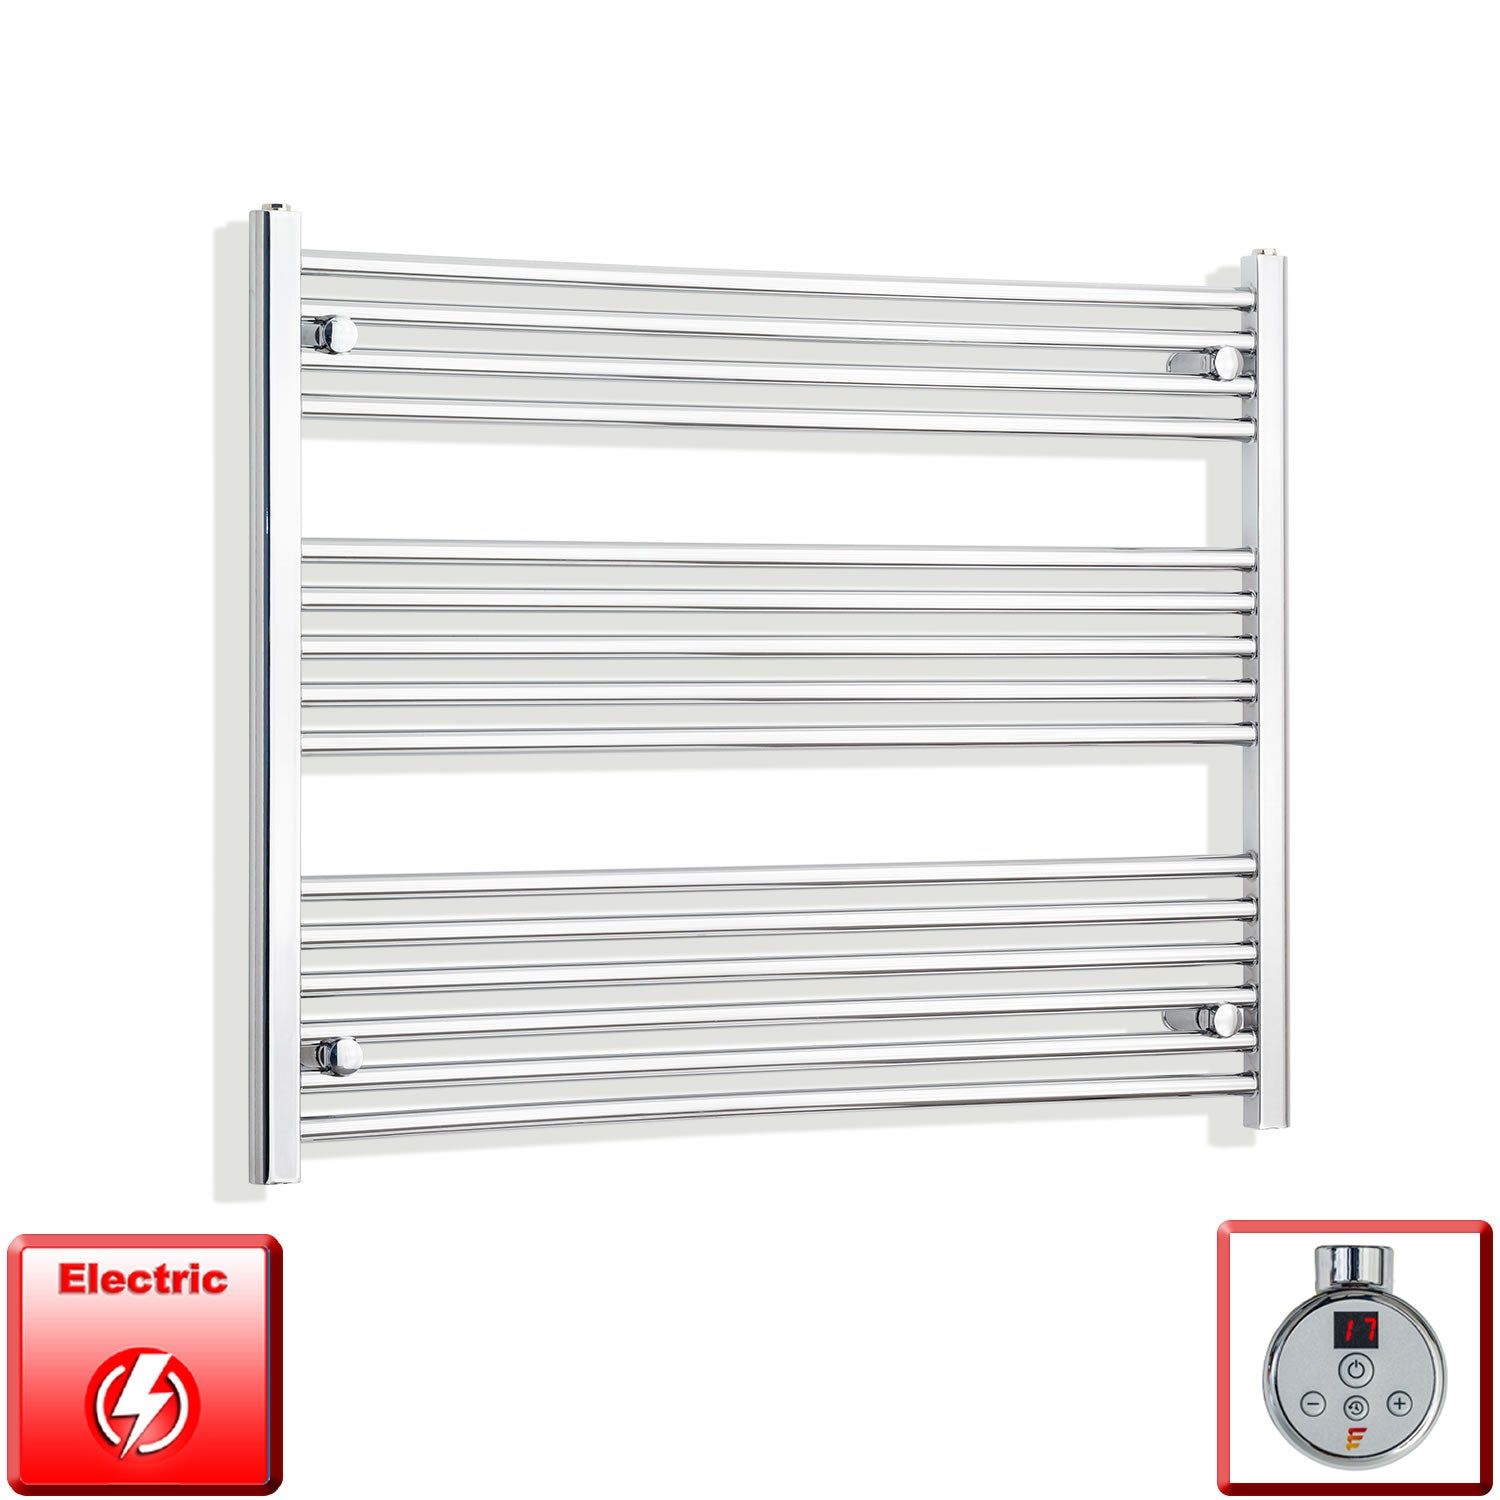 1000mm Wide 800mm High Flat Chrome Pre-Filled Electric Heated Towel Rail Radiator HTR